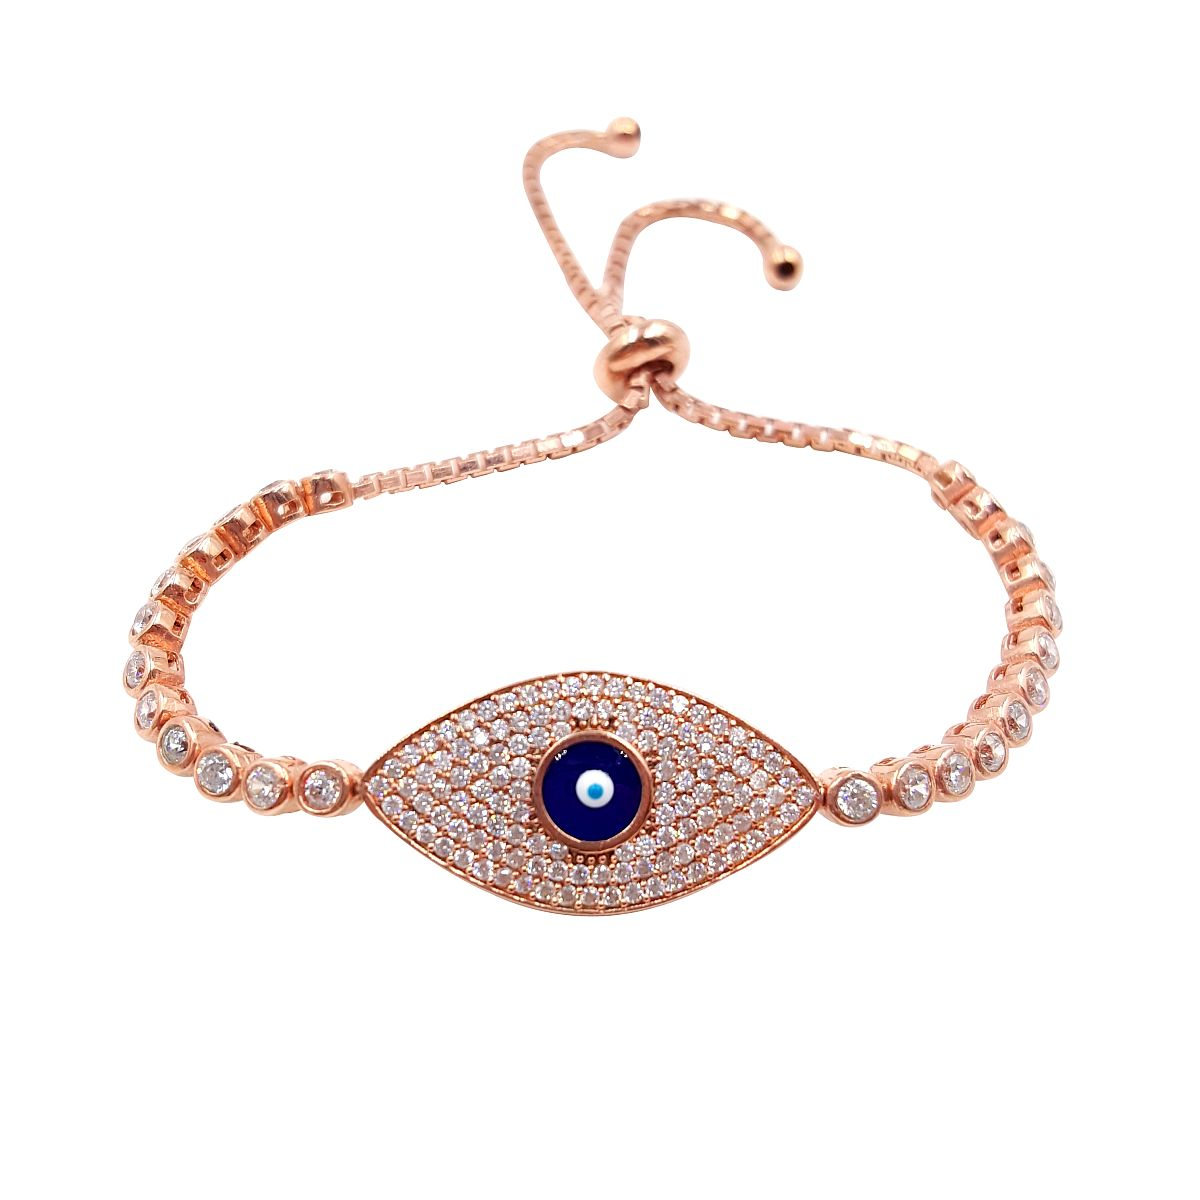 Gold over Sterling Silver Evil Eye Bracelet CMB20159383-2